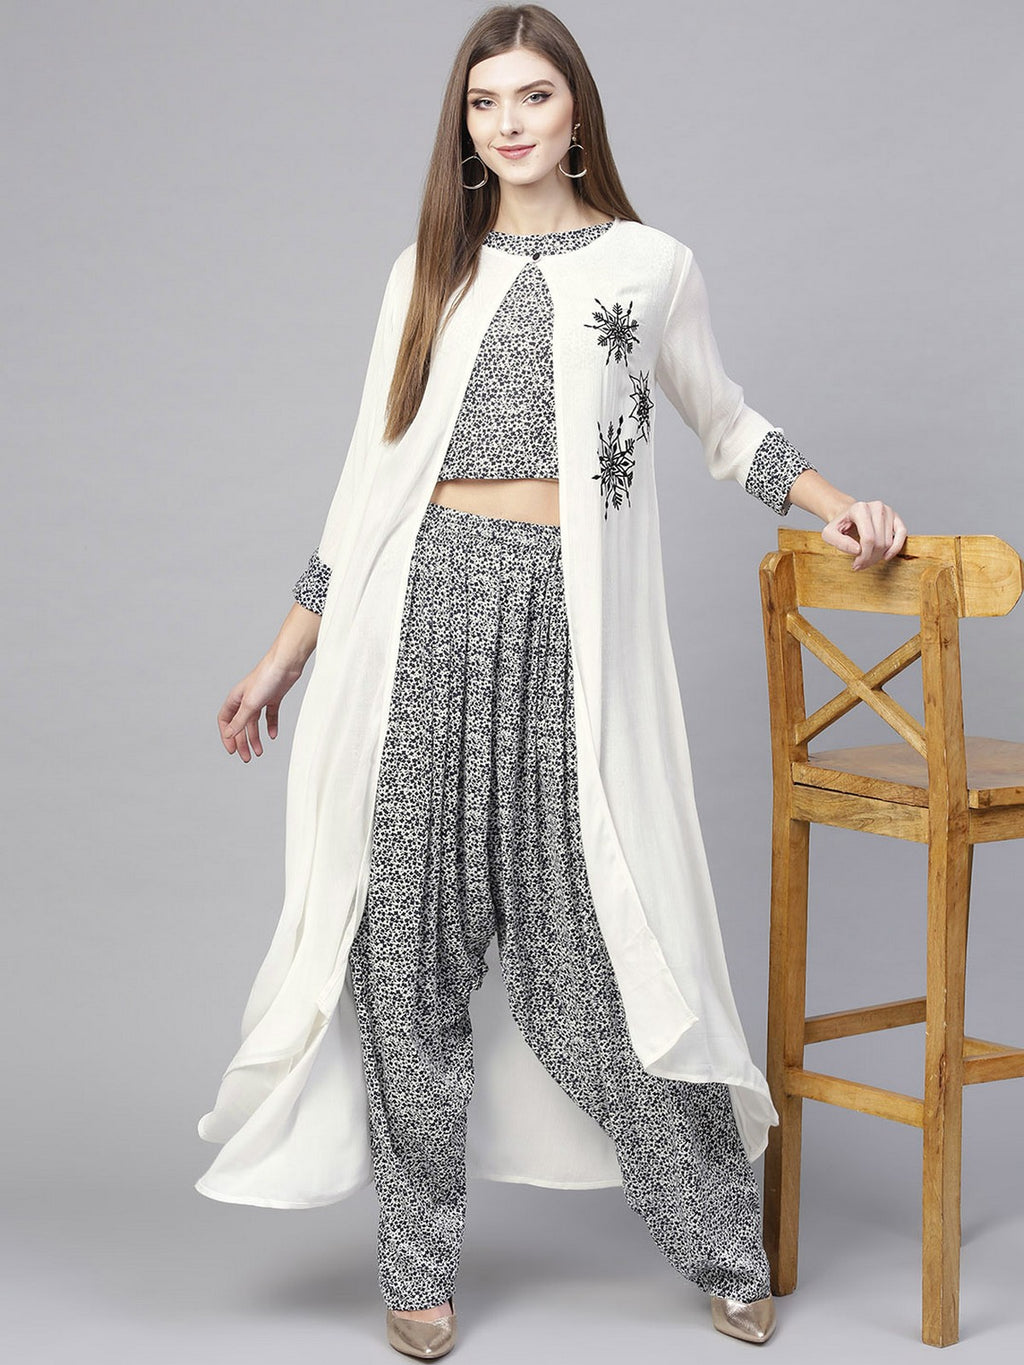 TOP WITH DHOTI SALWAR WITH LONG EMBROIDERED JACKET | Znx4ever.com